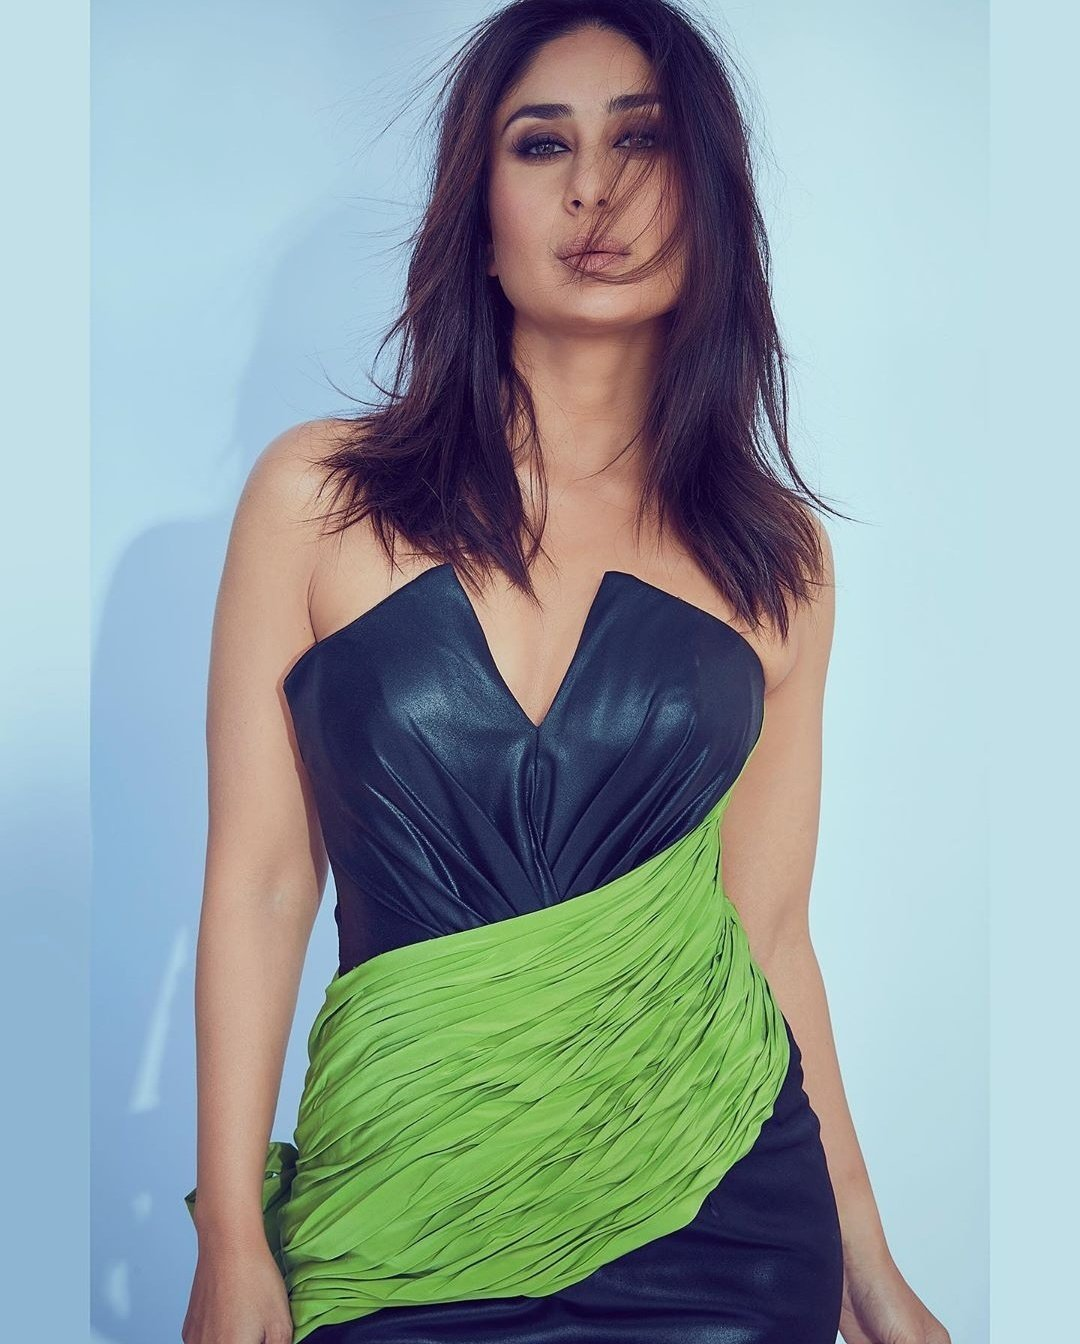 Kareena Kapoor Khan Latest Photoshoot